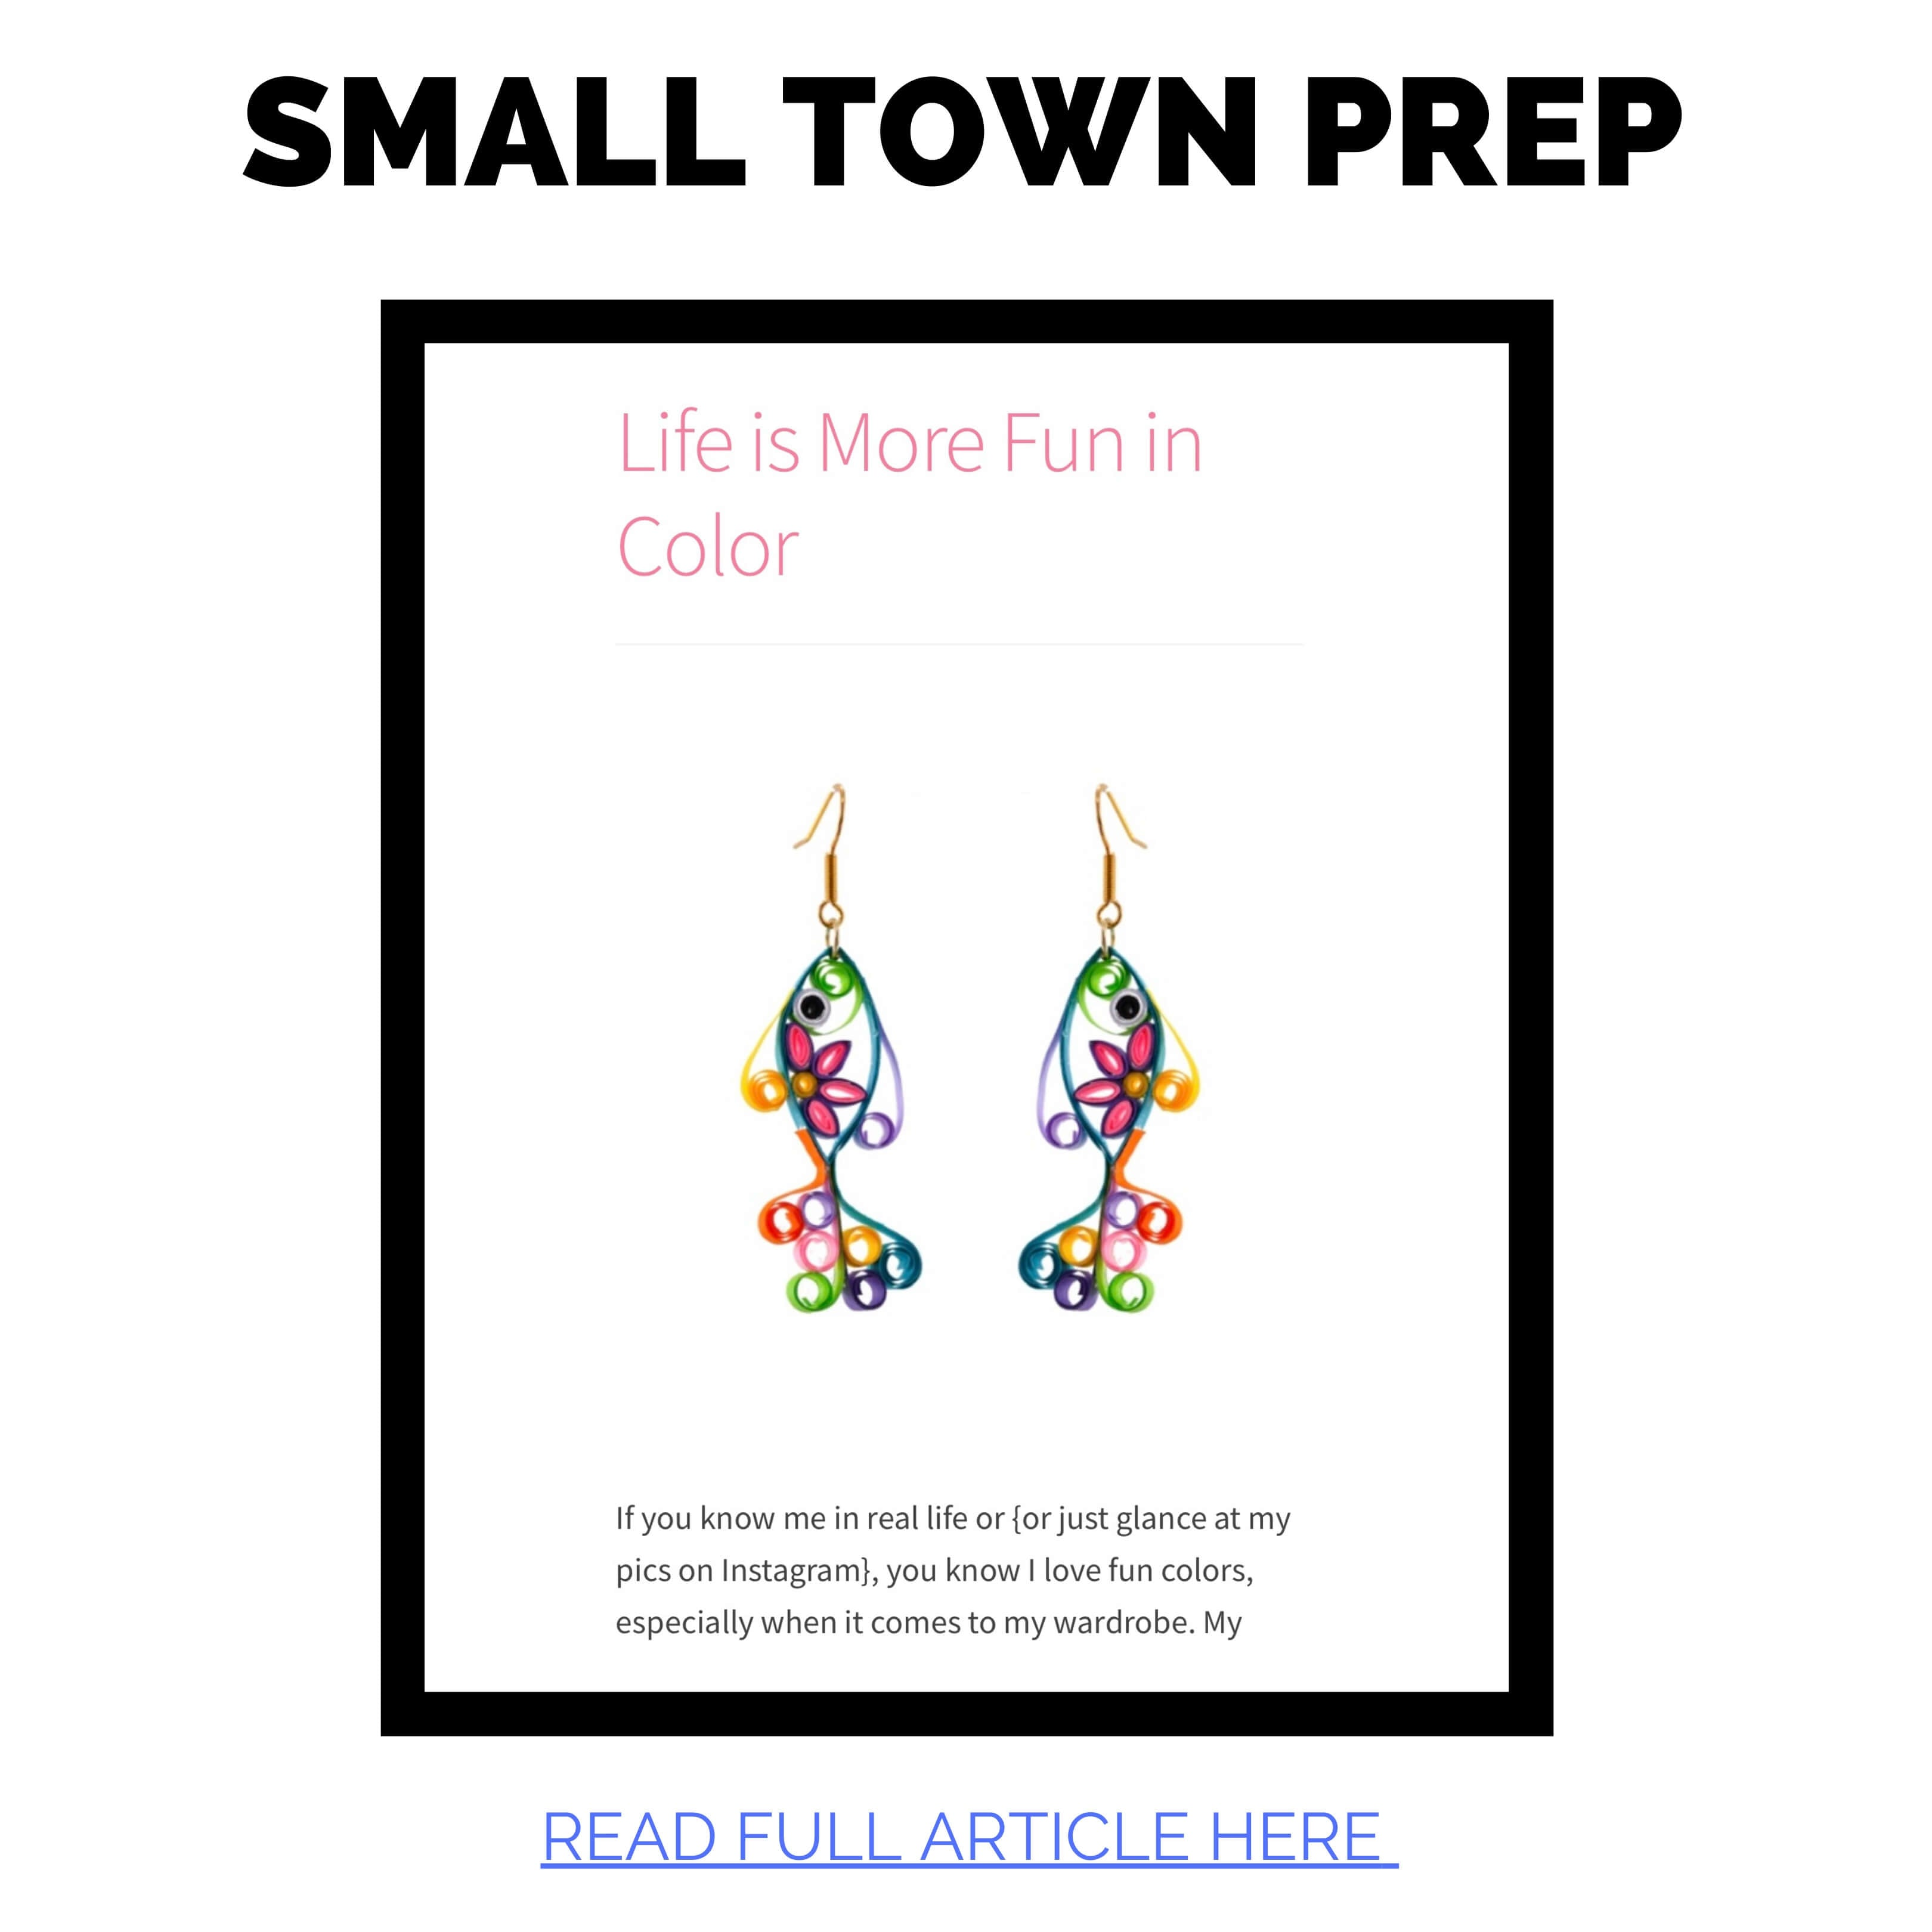 JAC featured in Small Town Prep